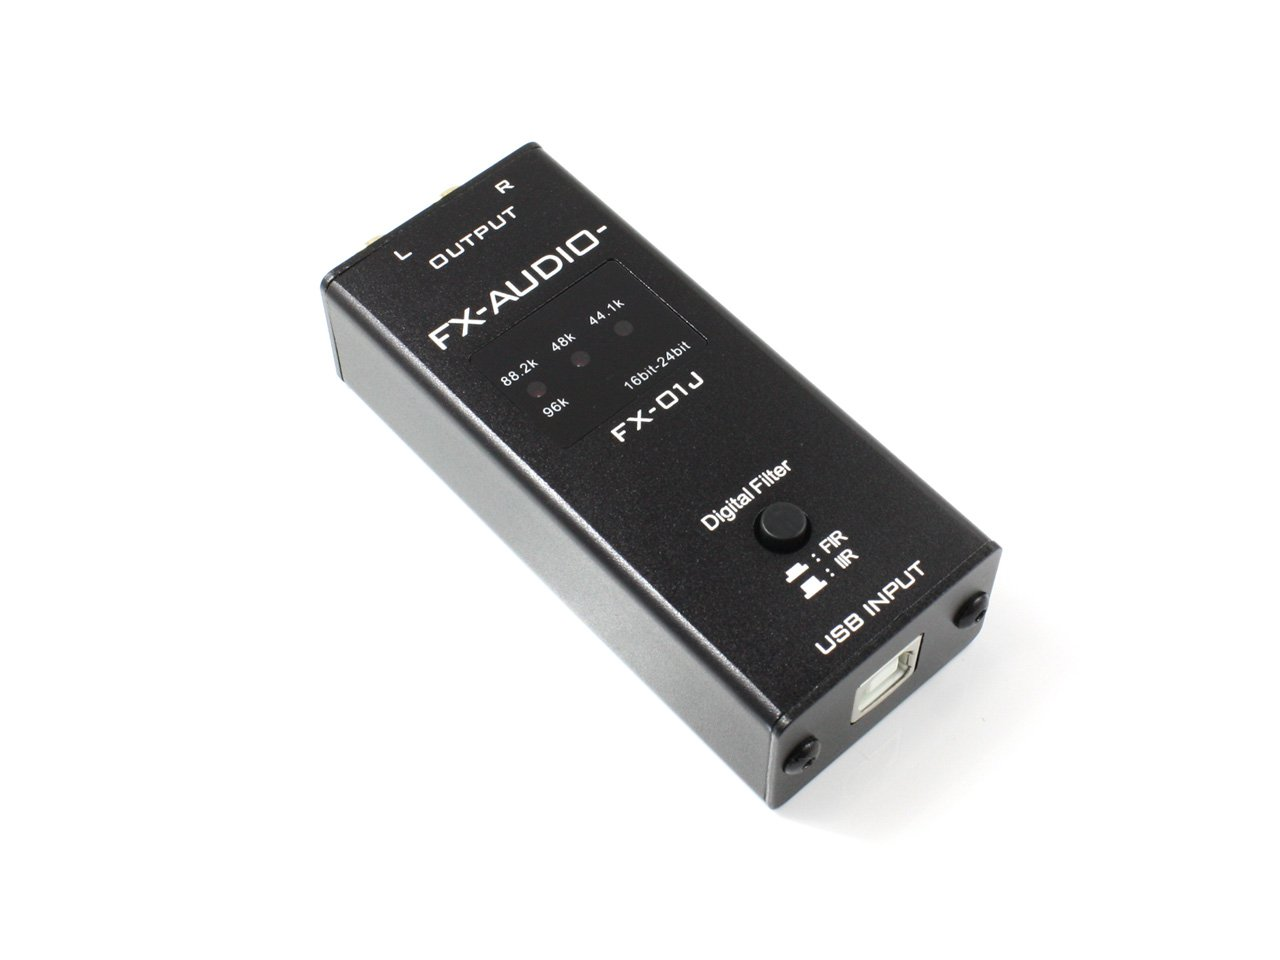 FX-AUDIO- DAC FX-01J TYPE-B